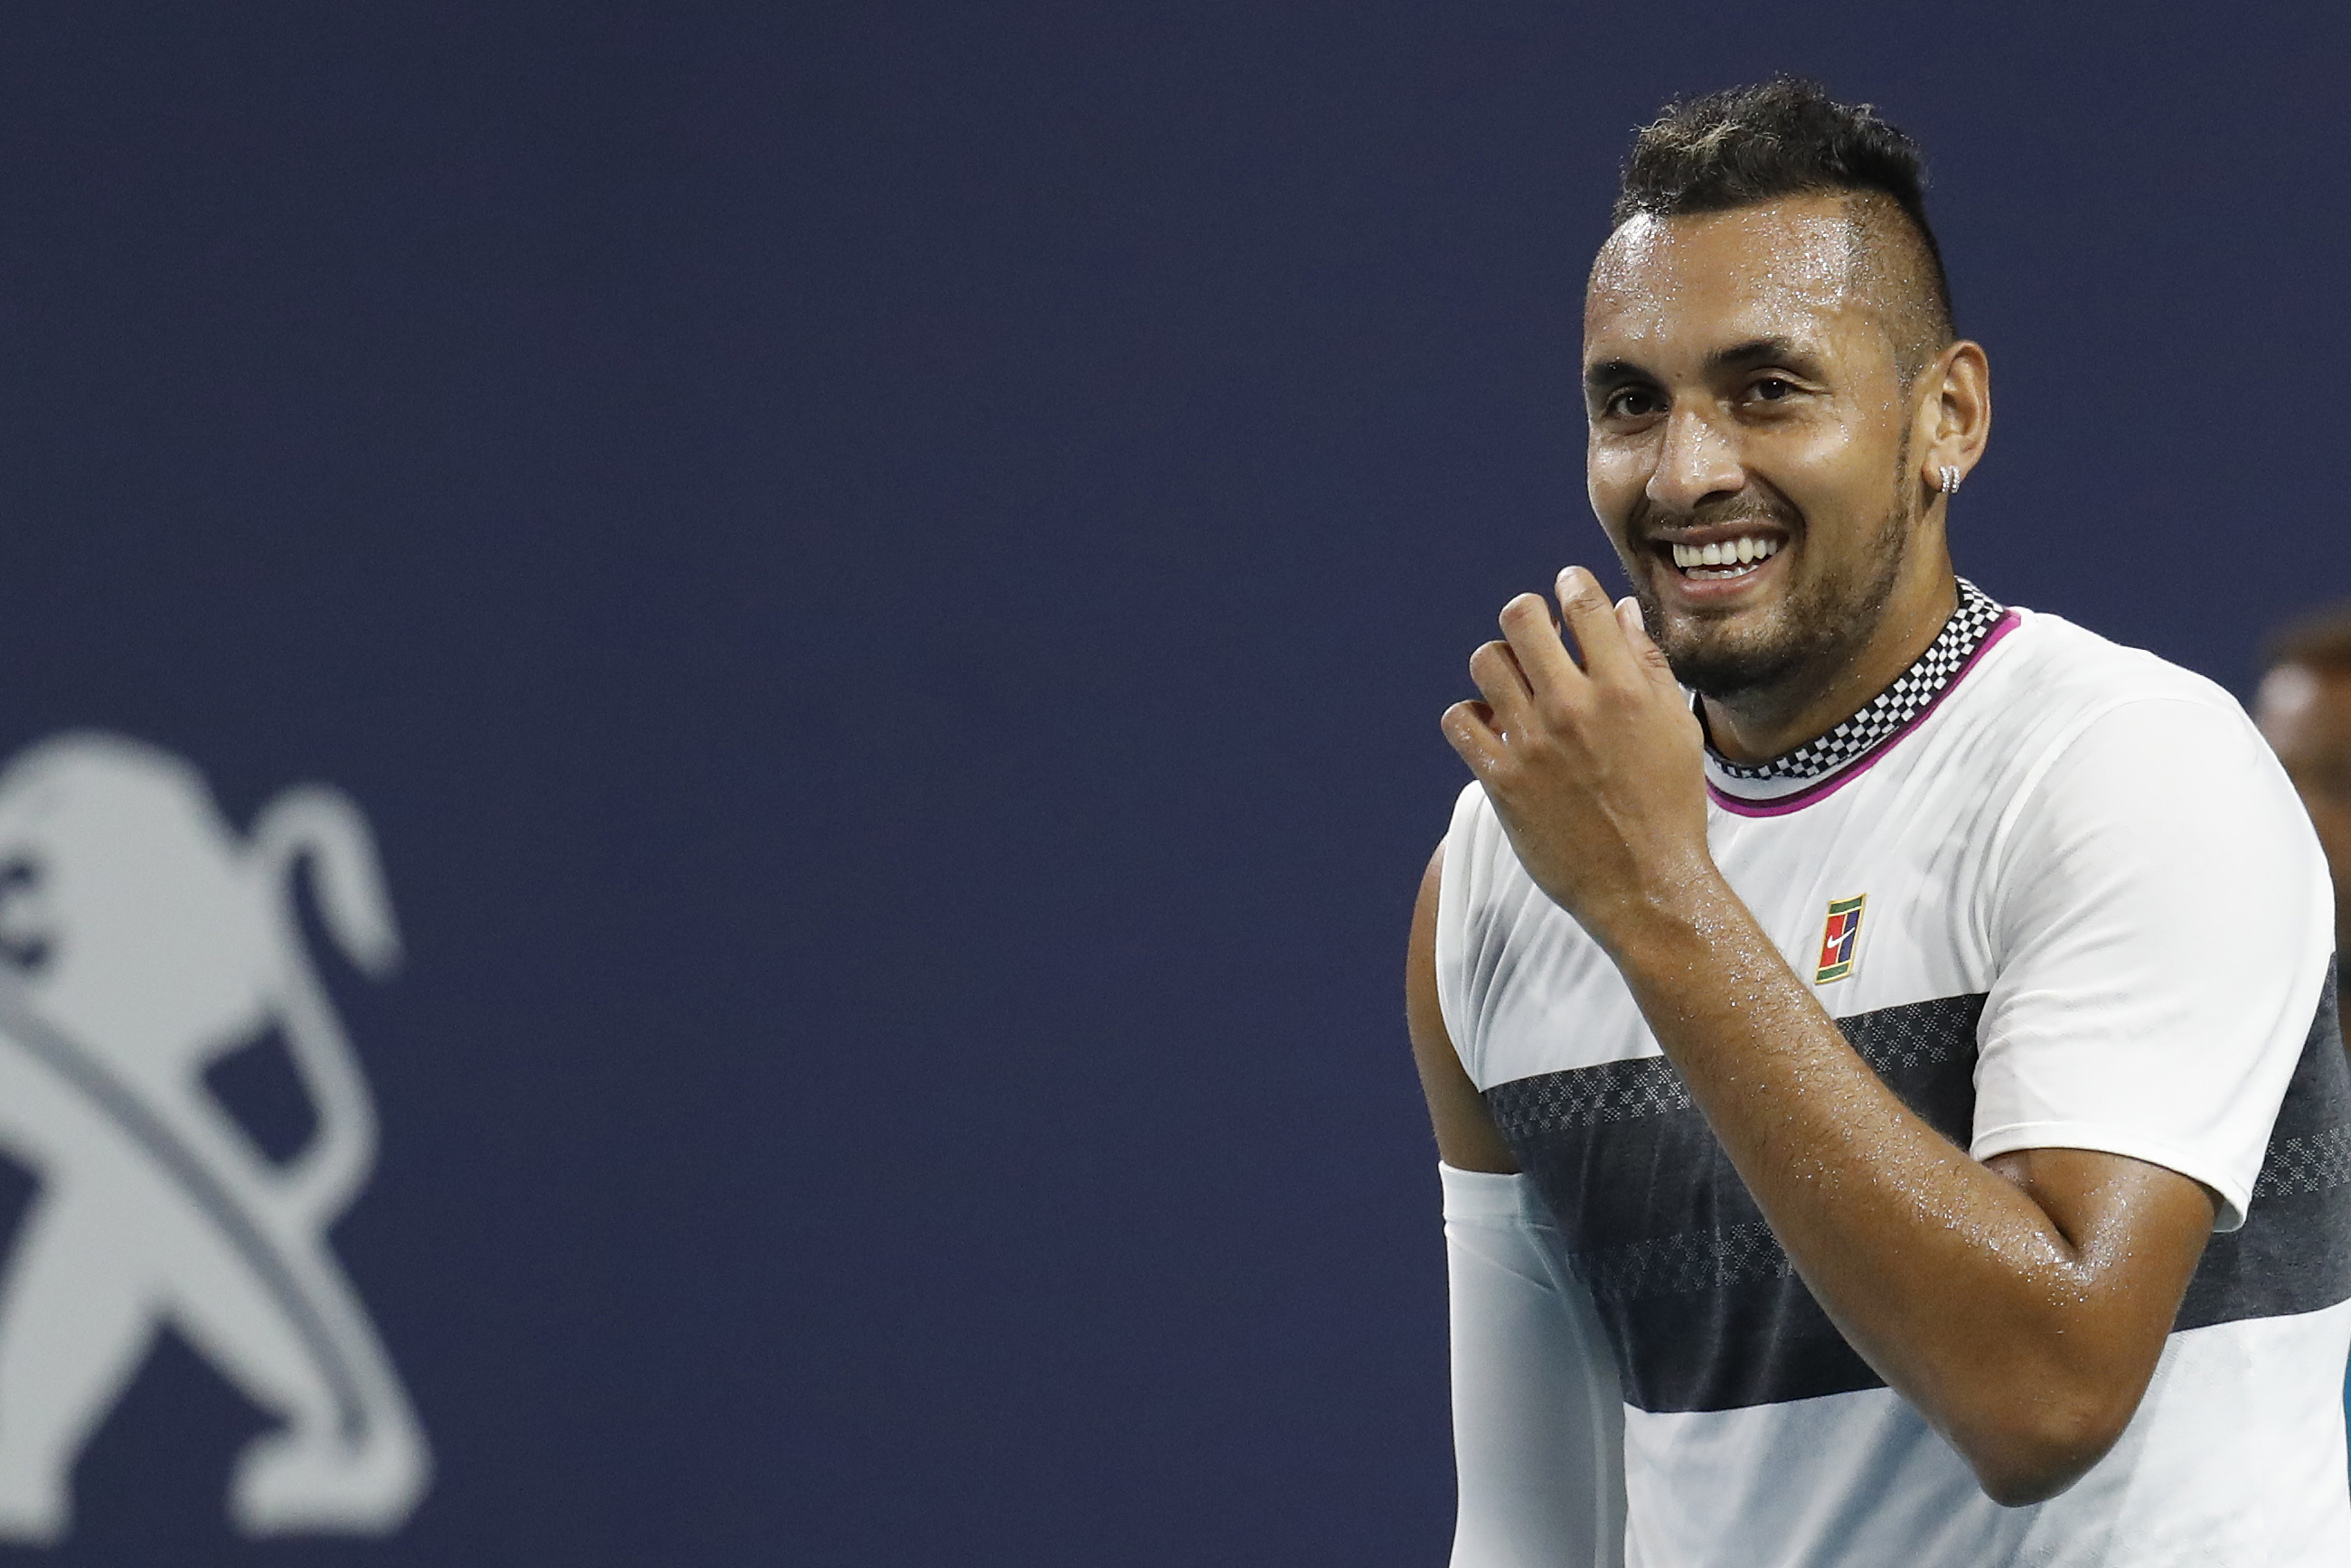 Kyrgios won relatively easily. Image: PA Images